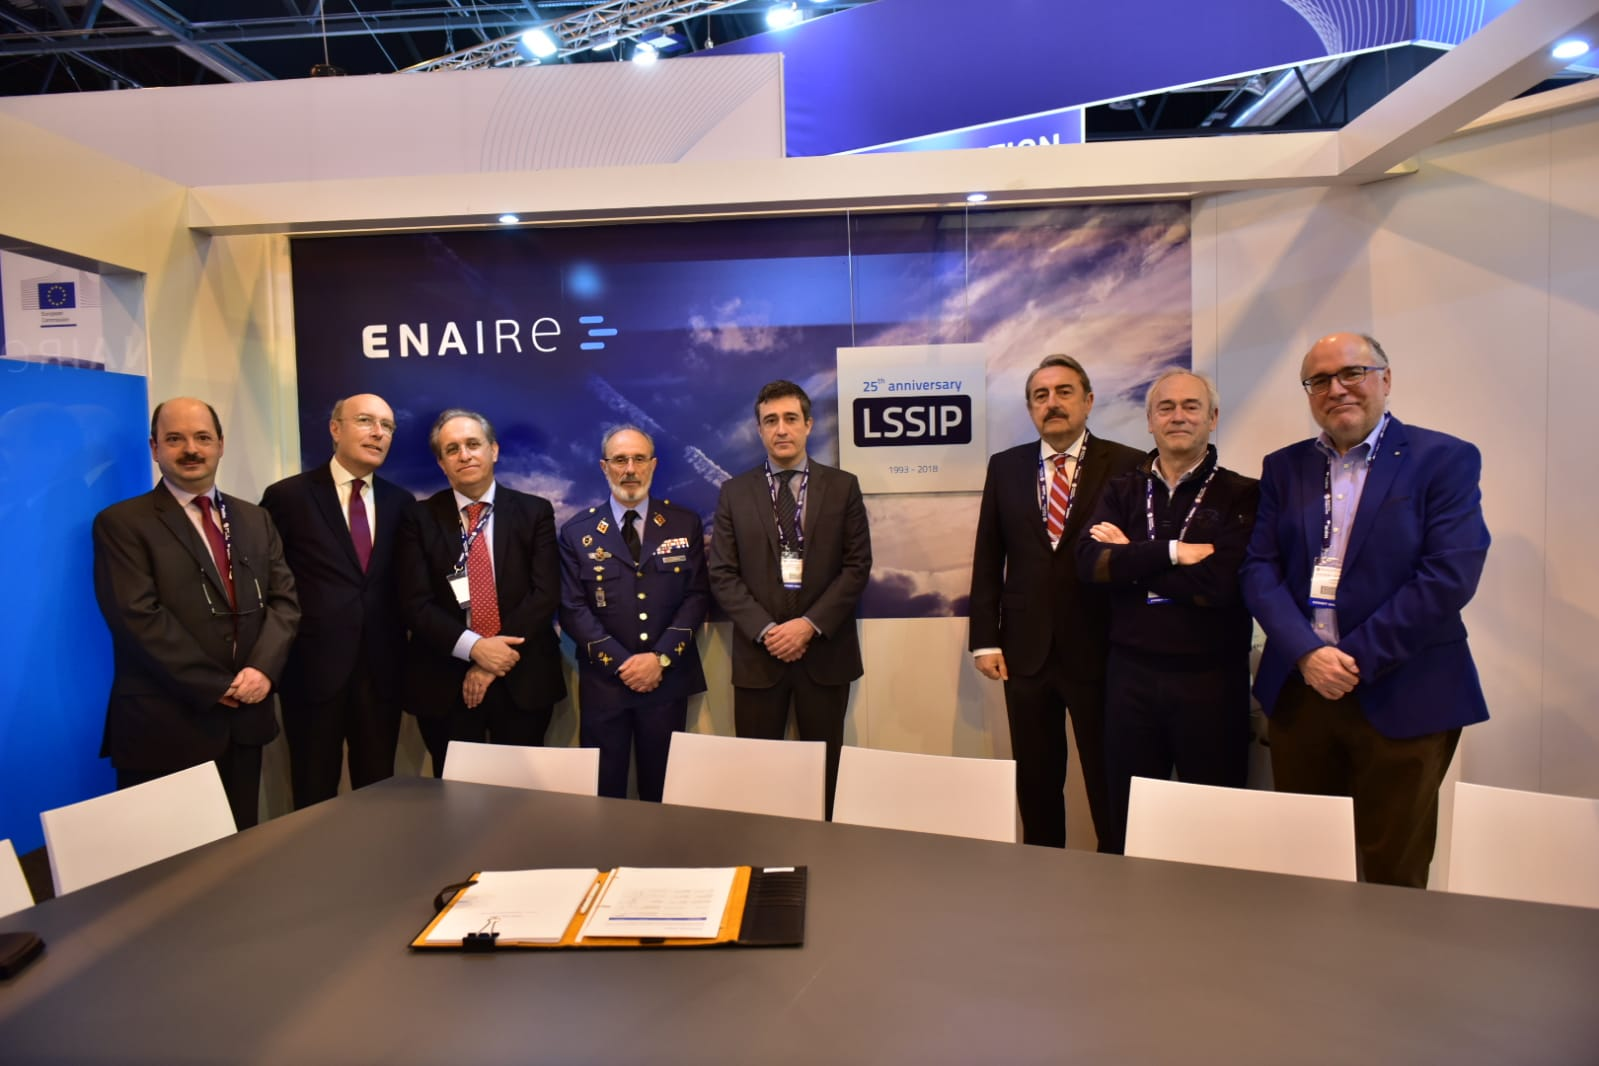 ENAIRE signs the Local Plan for Single European Sky implementation on the 25th anniversary of its creation